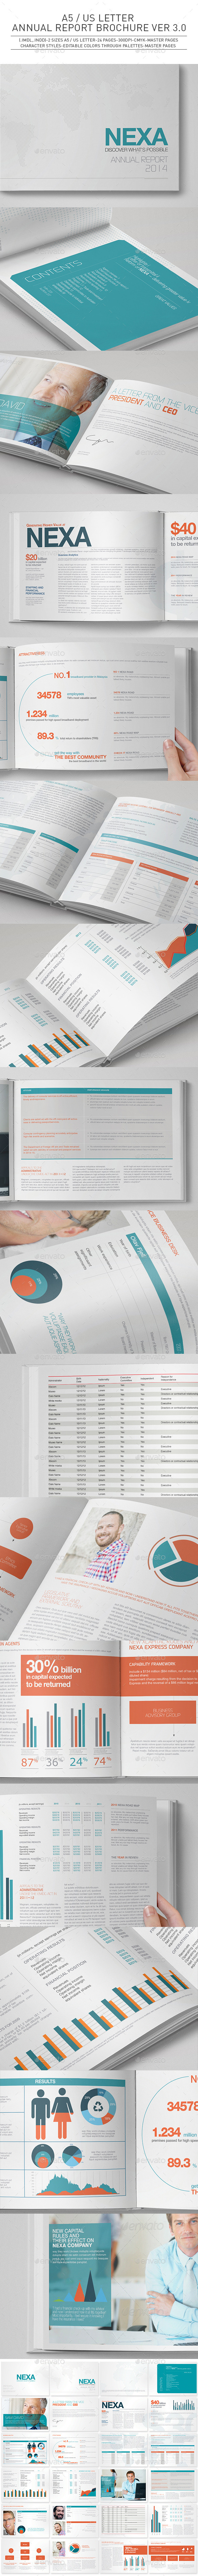 A5 / US Letter Annual Report Brochure Ver 3.0 - Corporate Brochures